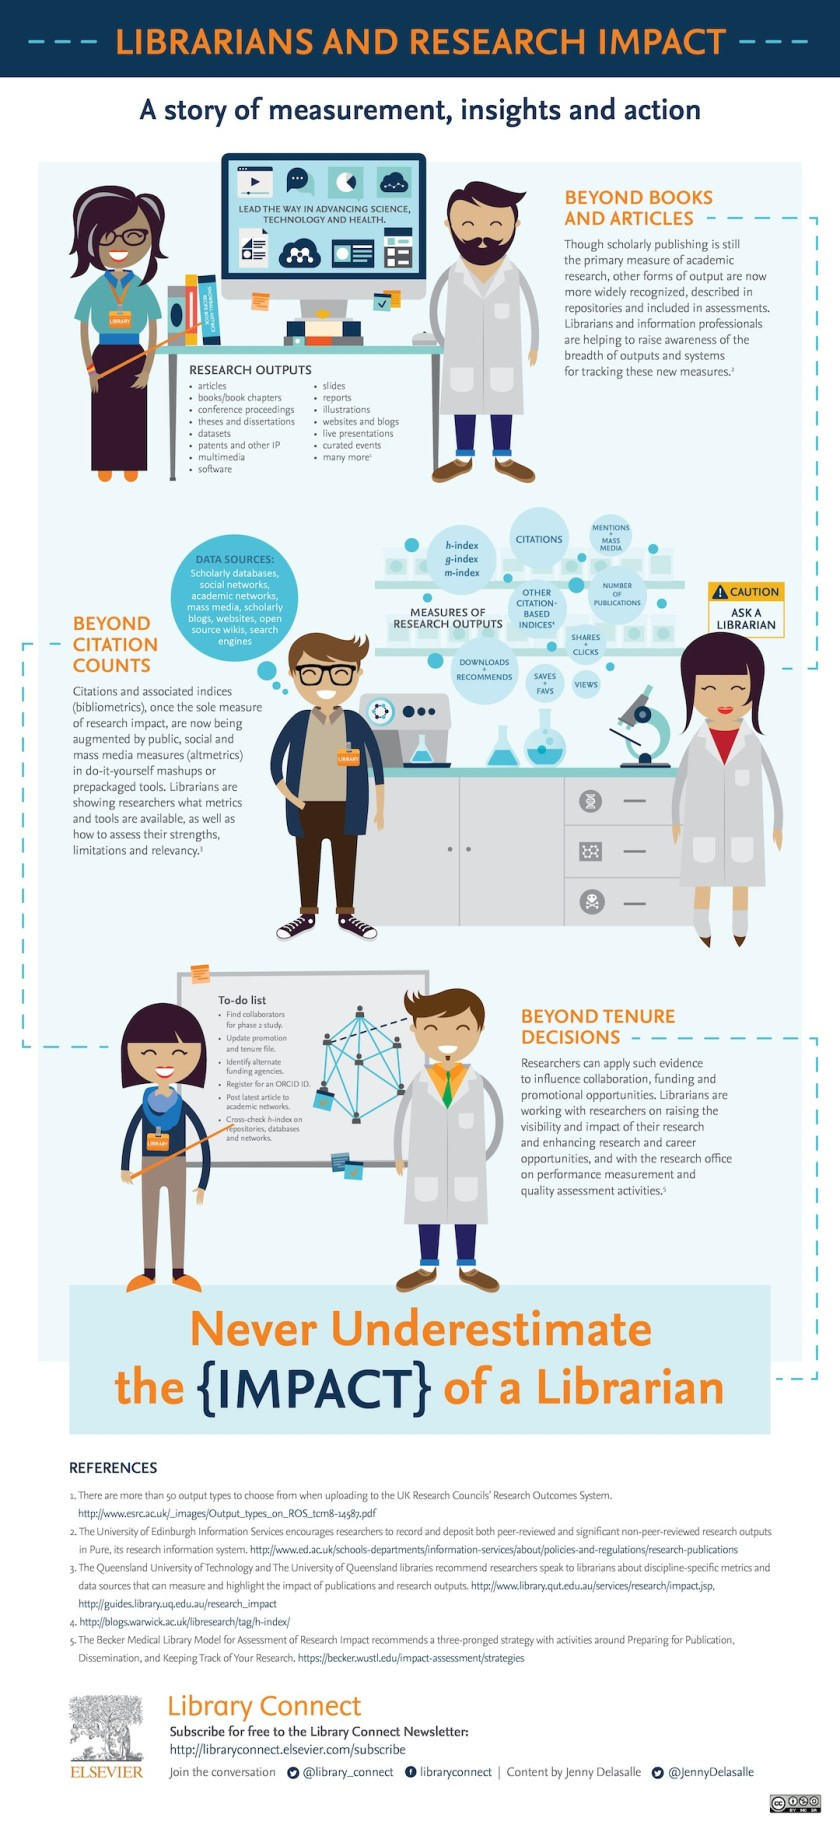 Librarians and research impact #infographic